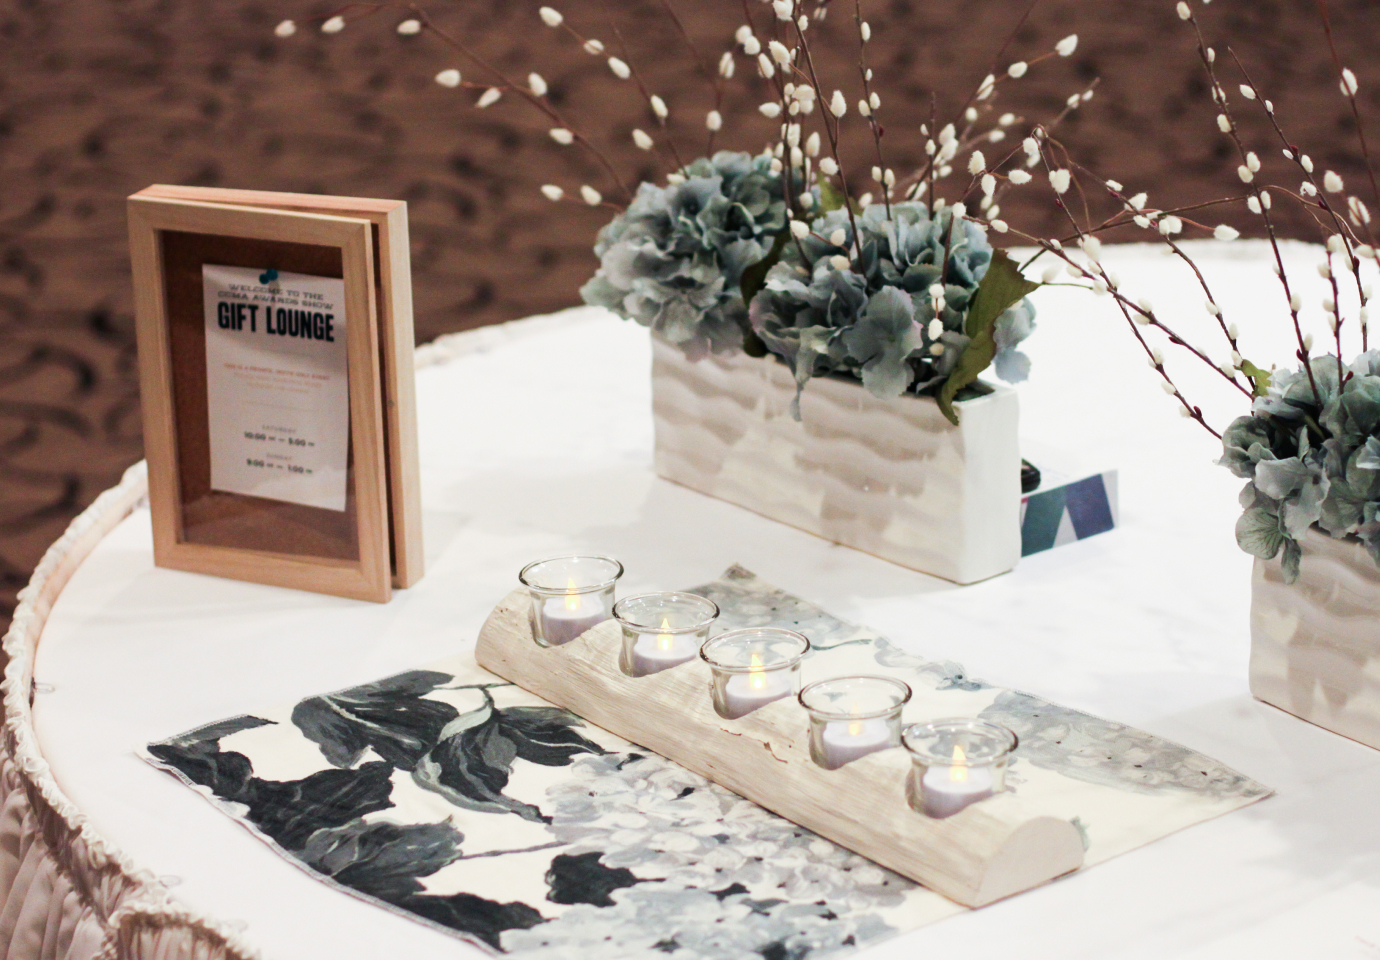 Candles and flower arrangements on a gift lounge table